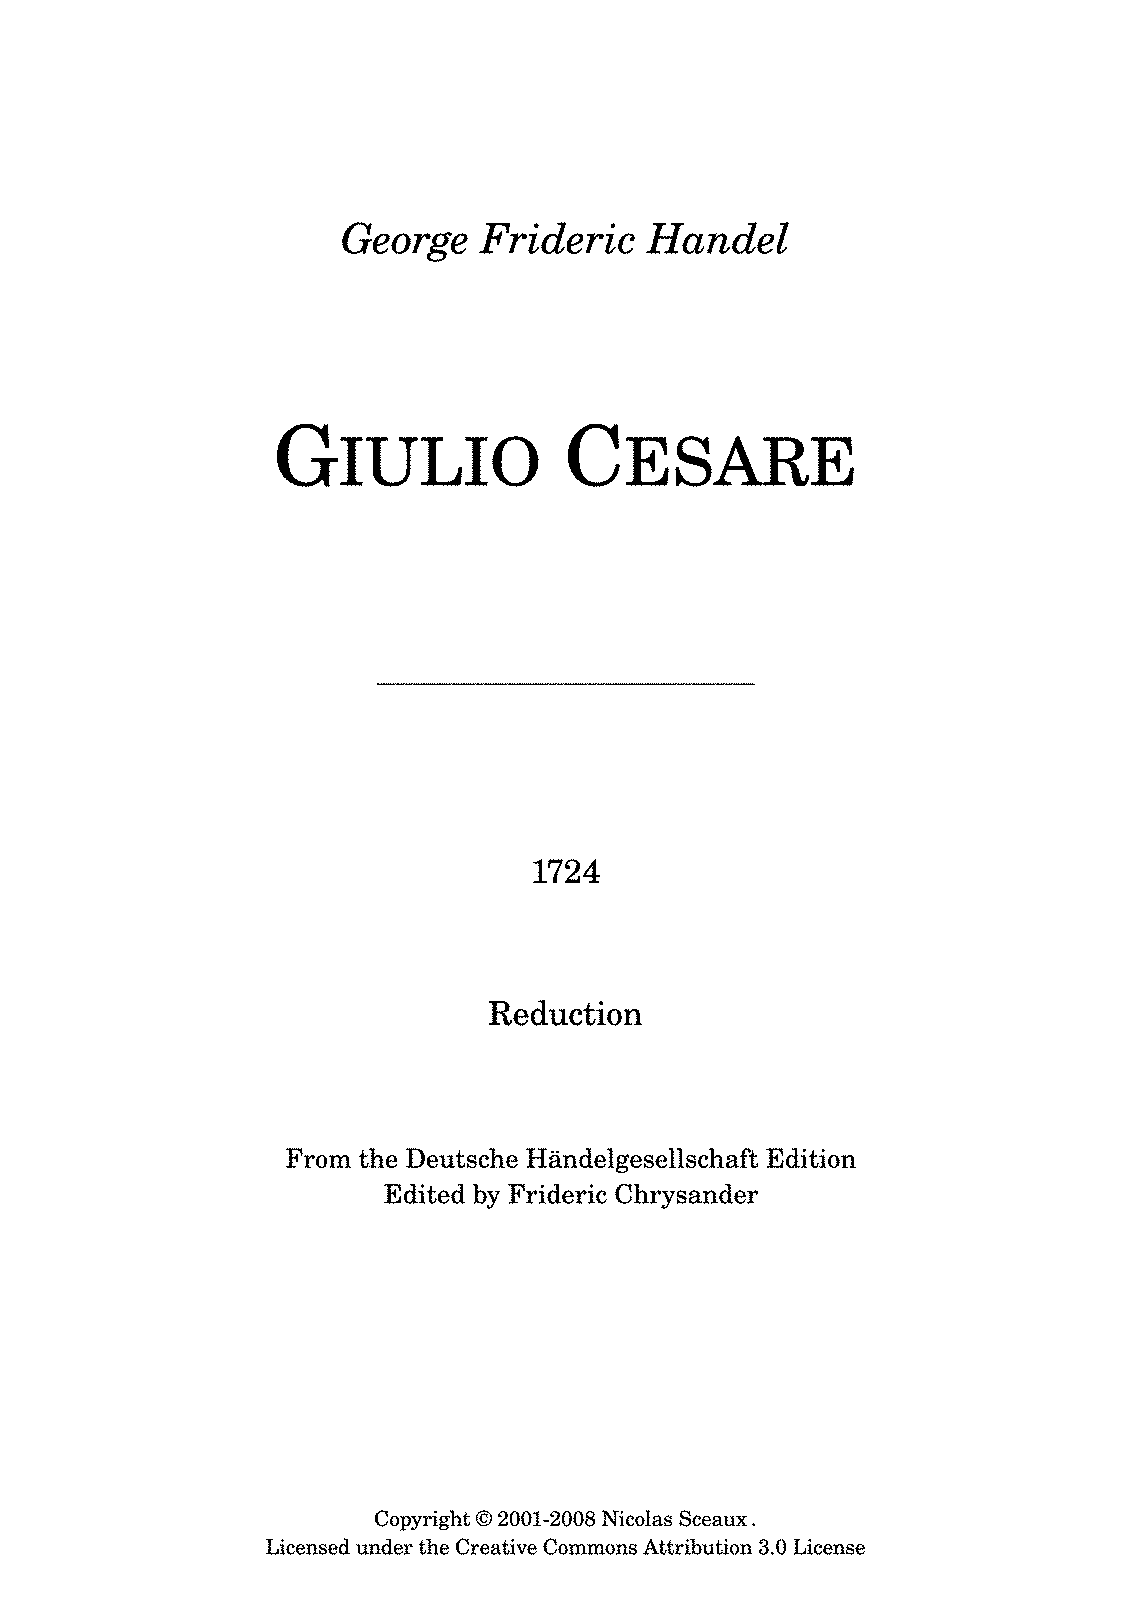 PMLP35138-GiulioCesare-reduction.pdf